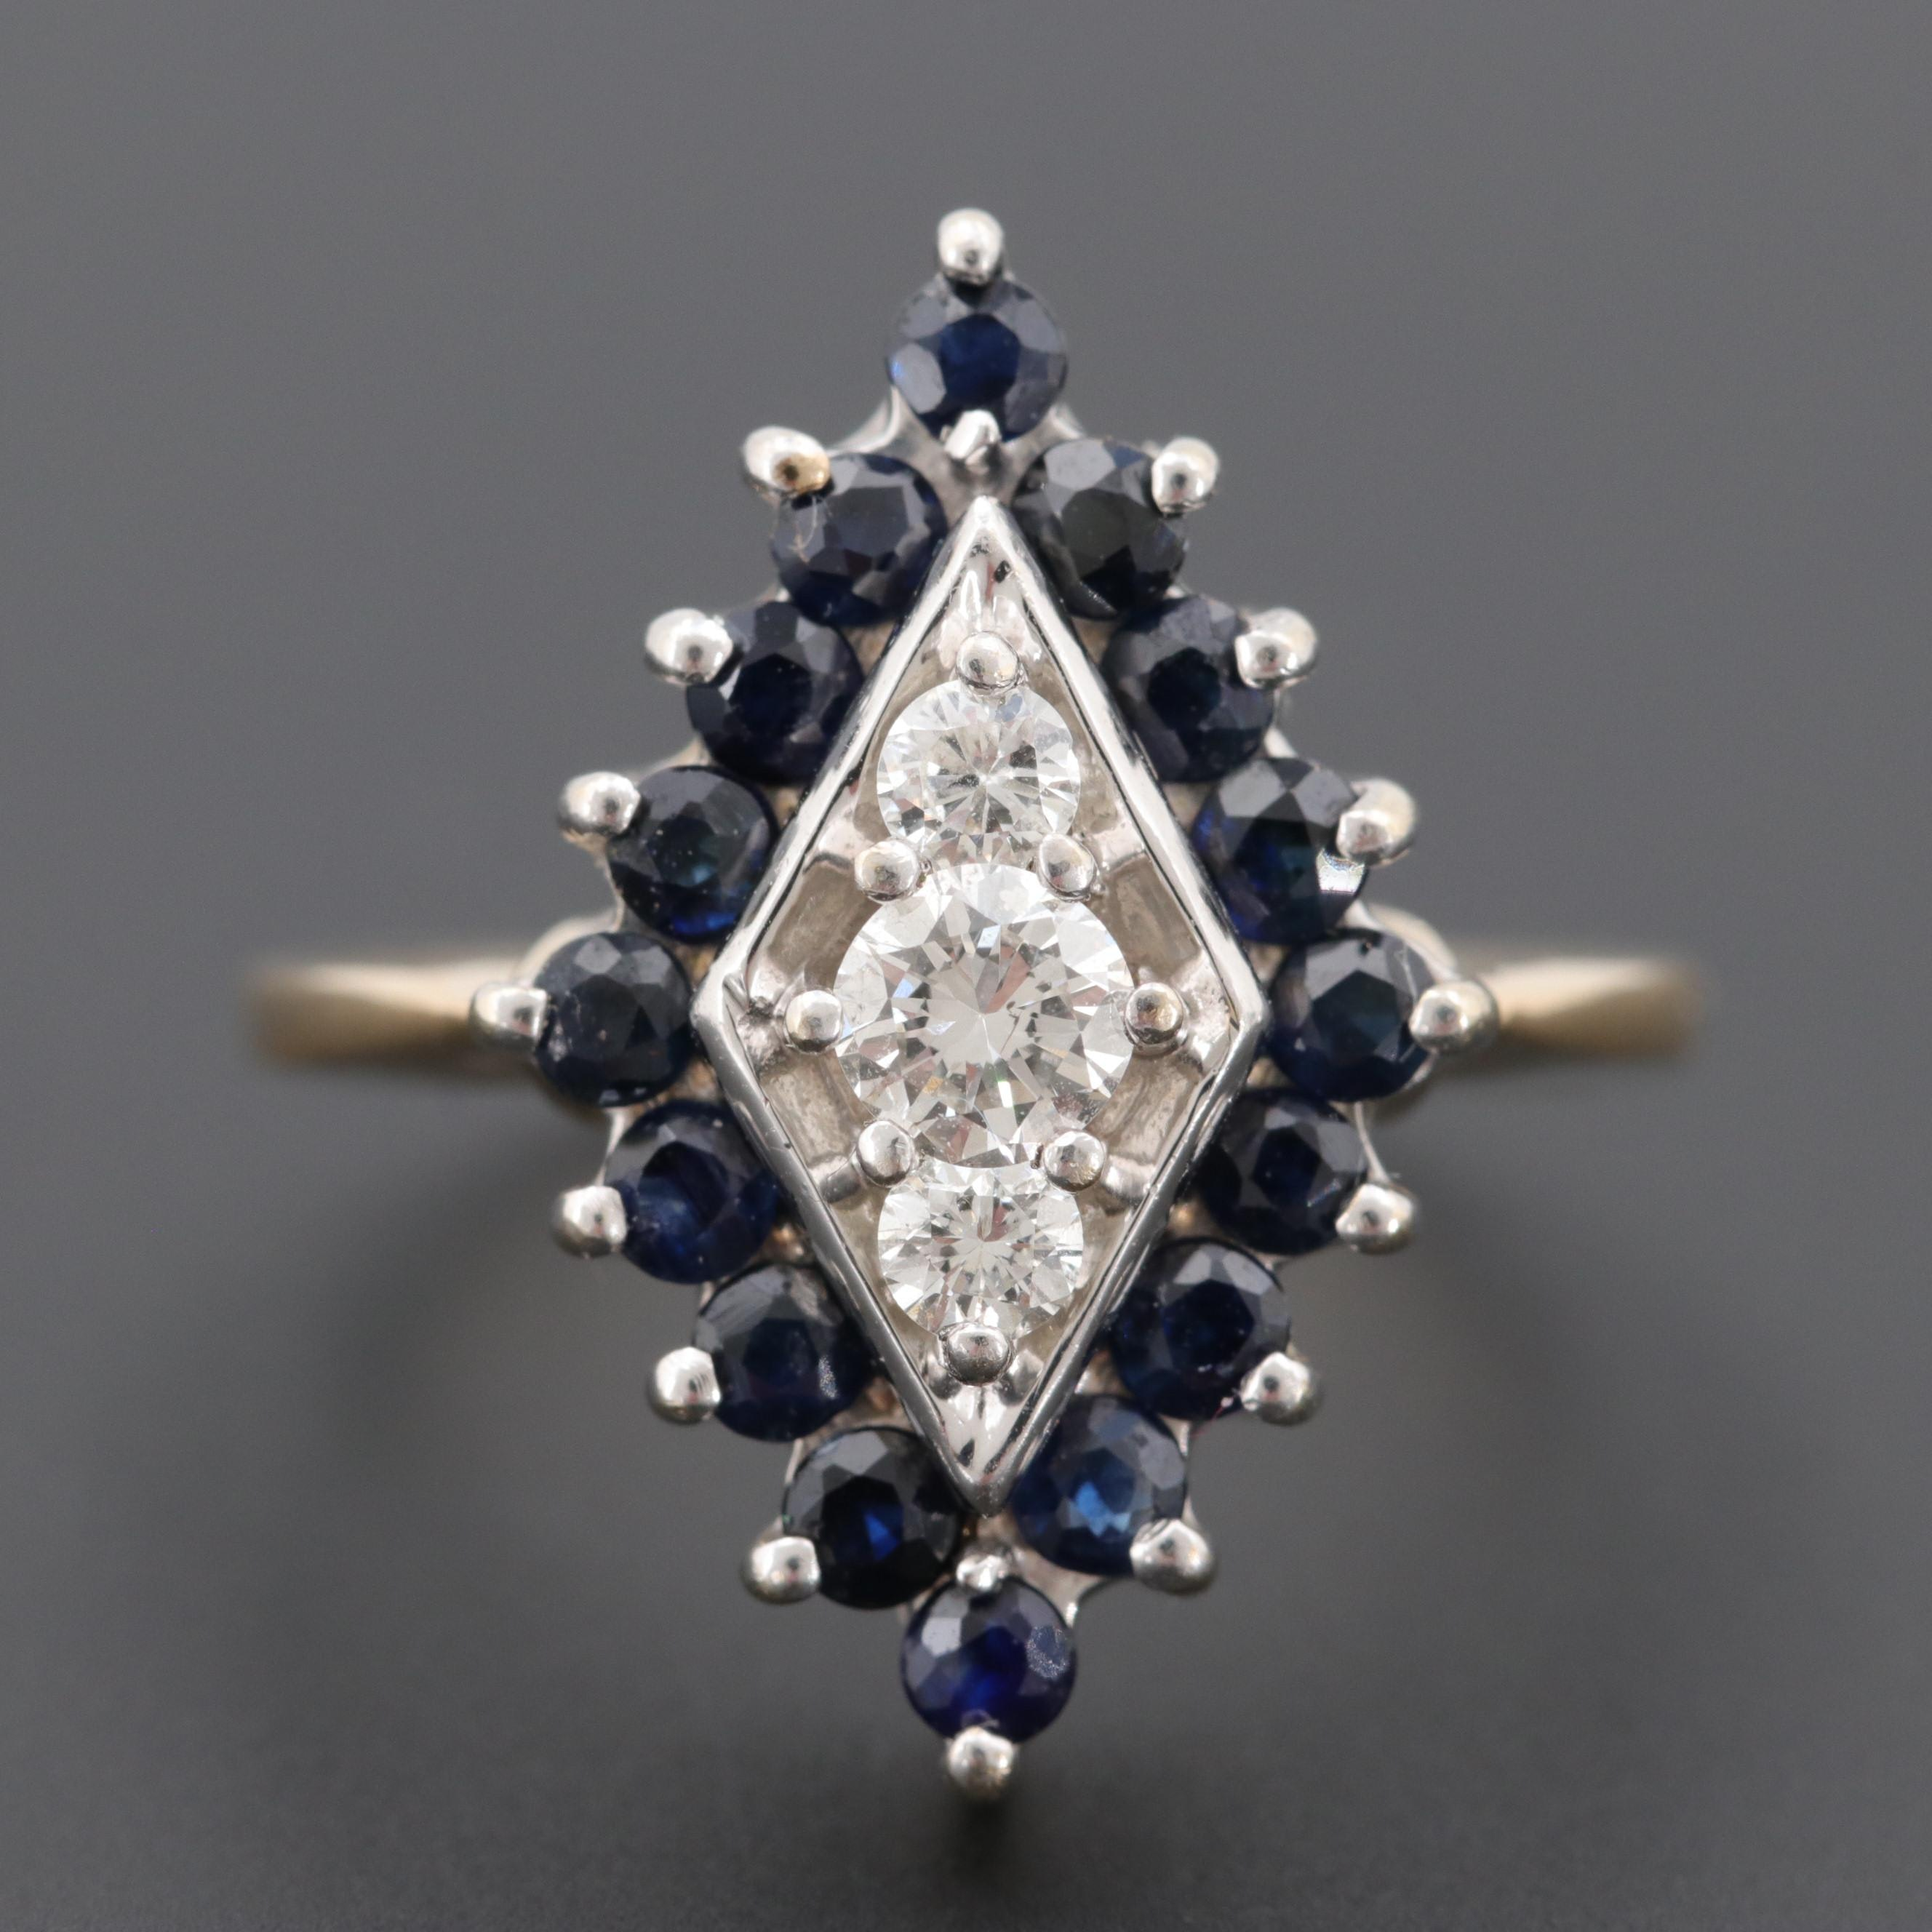 14K Yellow Gold Diamond and Sapphire Ring with White Gold Setting